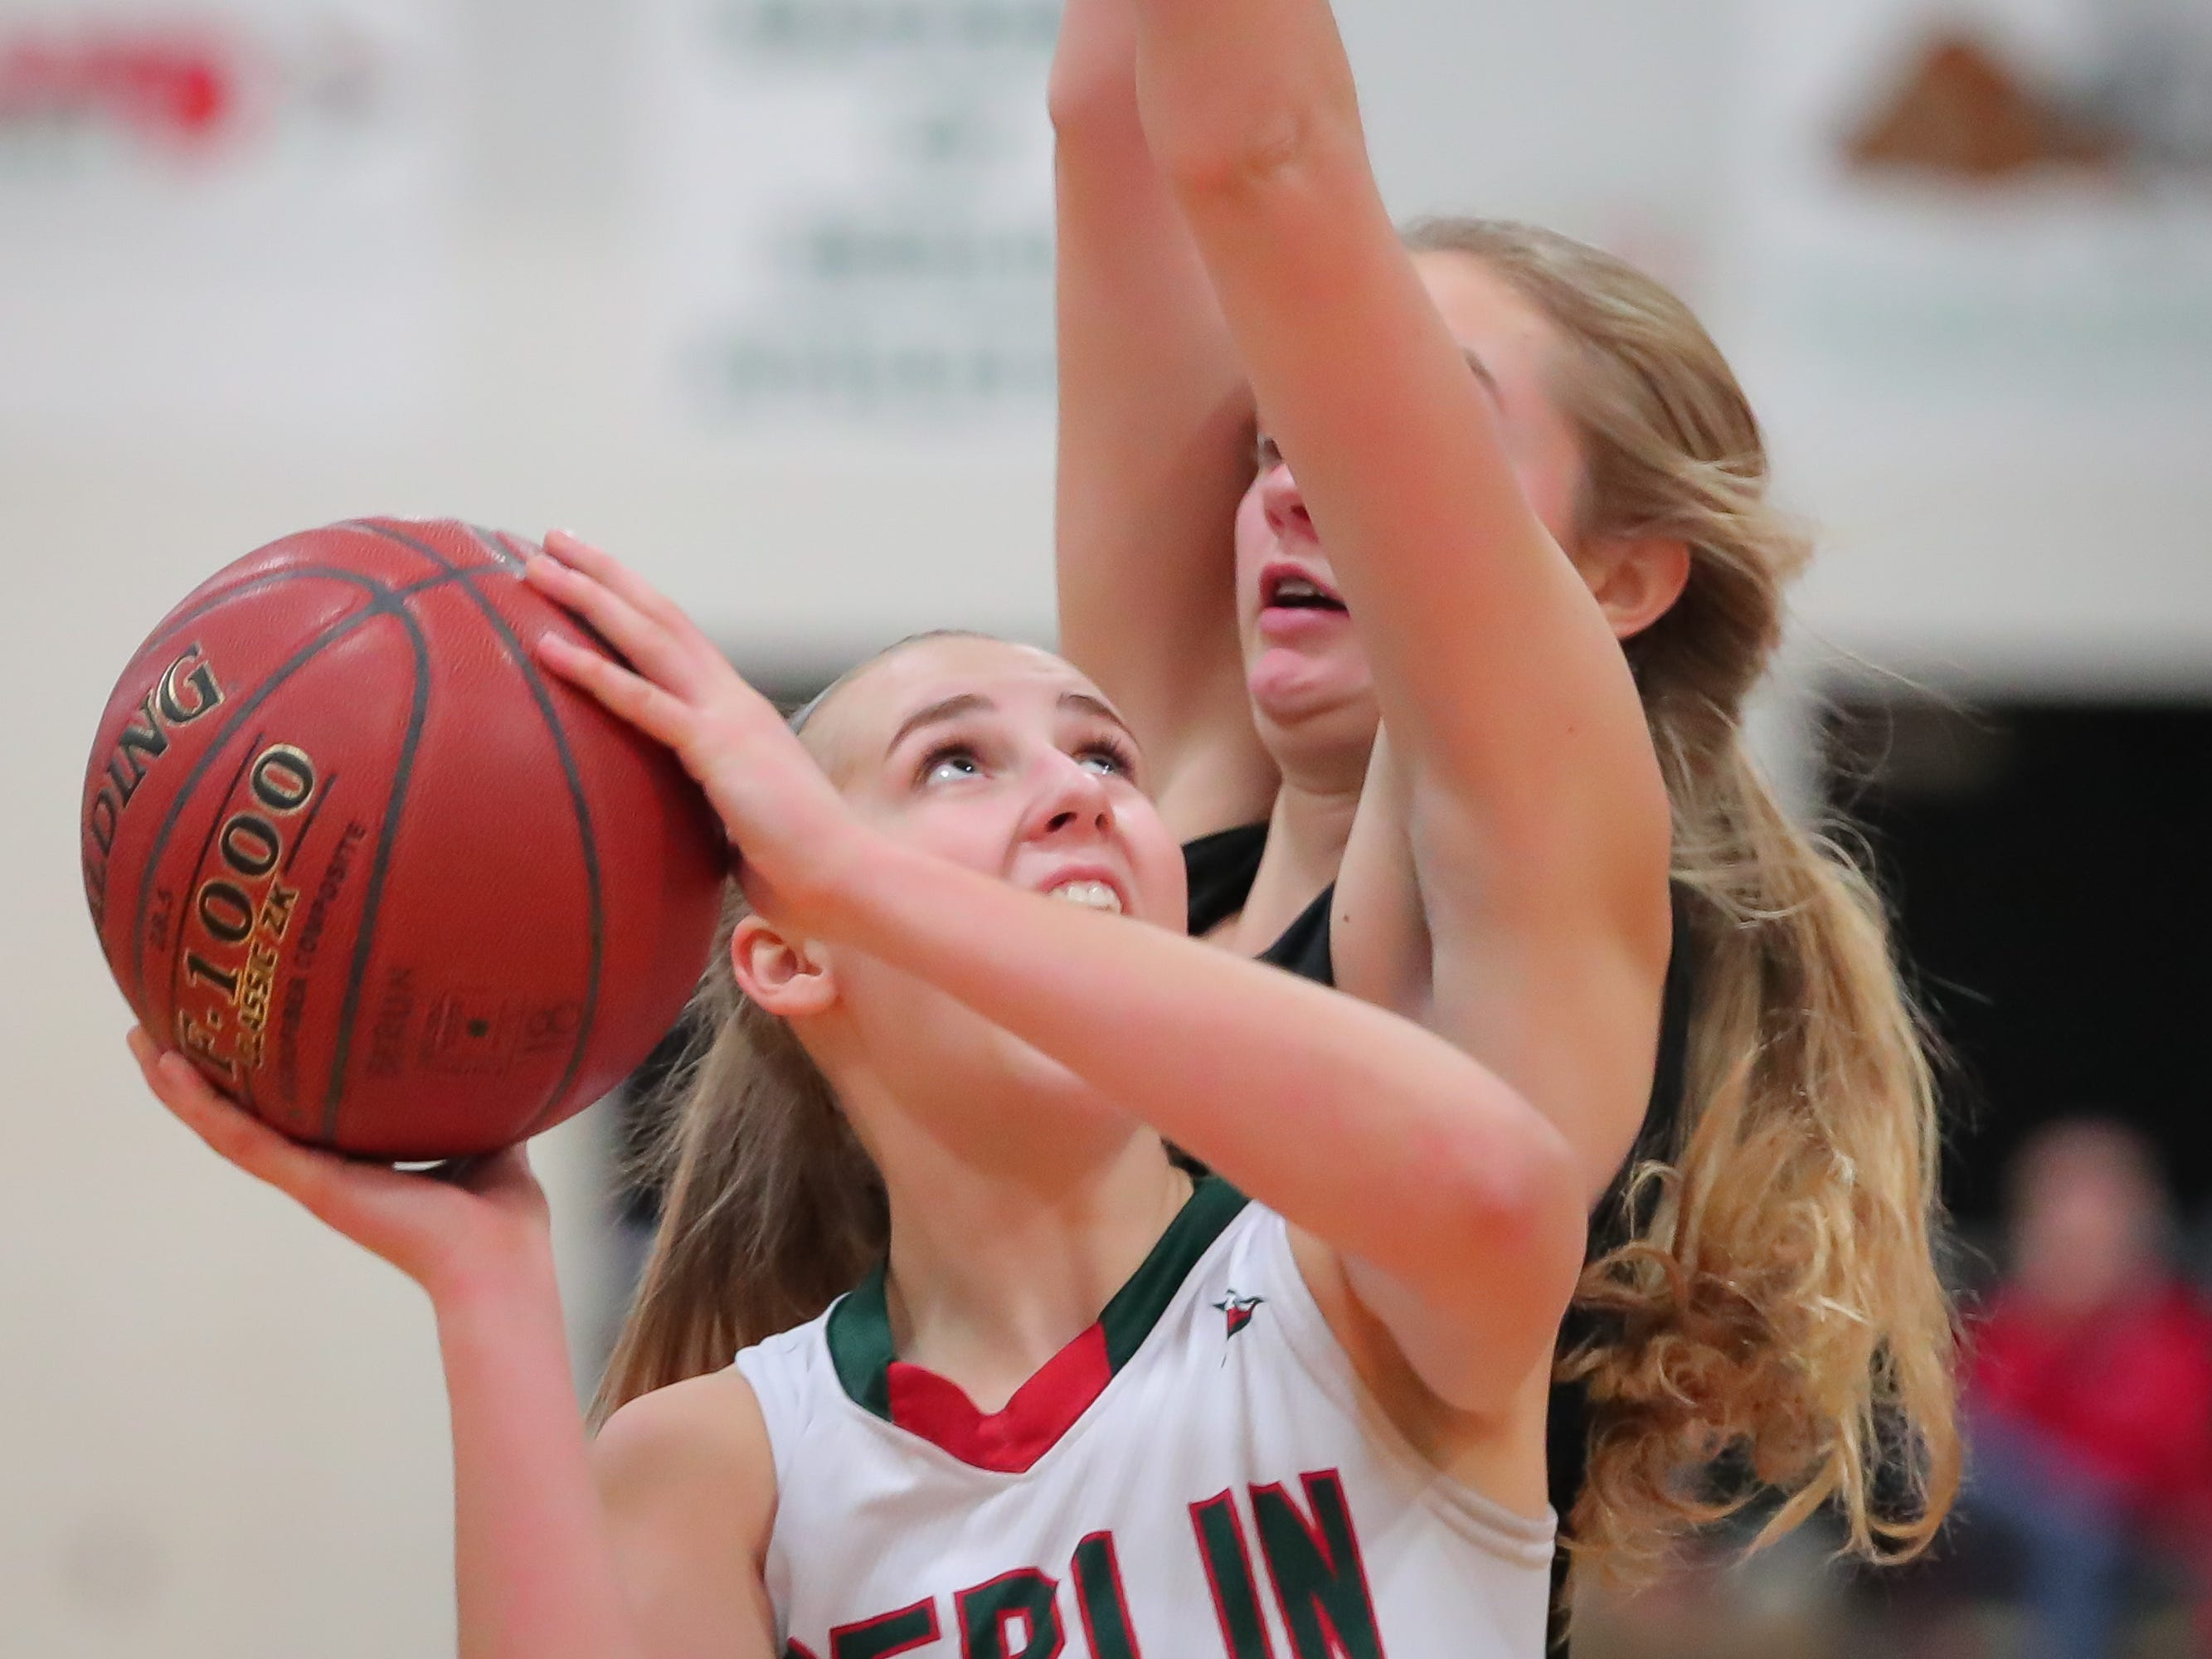 Myah Jodarski (3) of Berlin keeps her eye on the basket as she takes a shot. The Berlin Indians hosted the Ripon Tigers in an East Central Conference girls basketball matchup Friday evening, December 21, 2018.